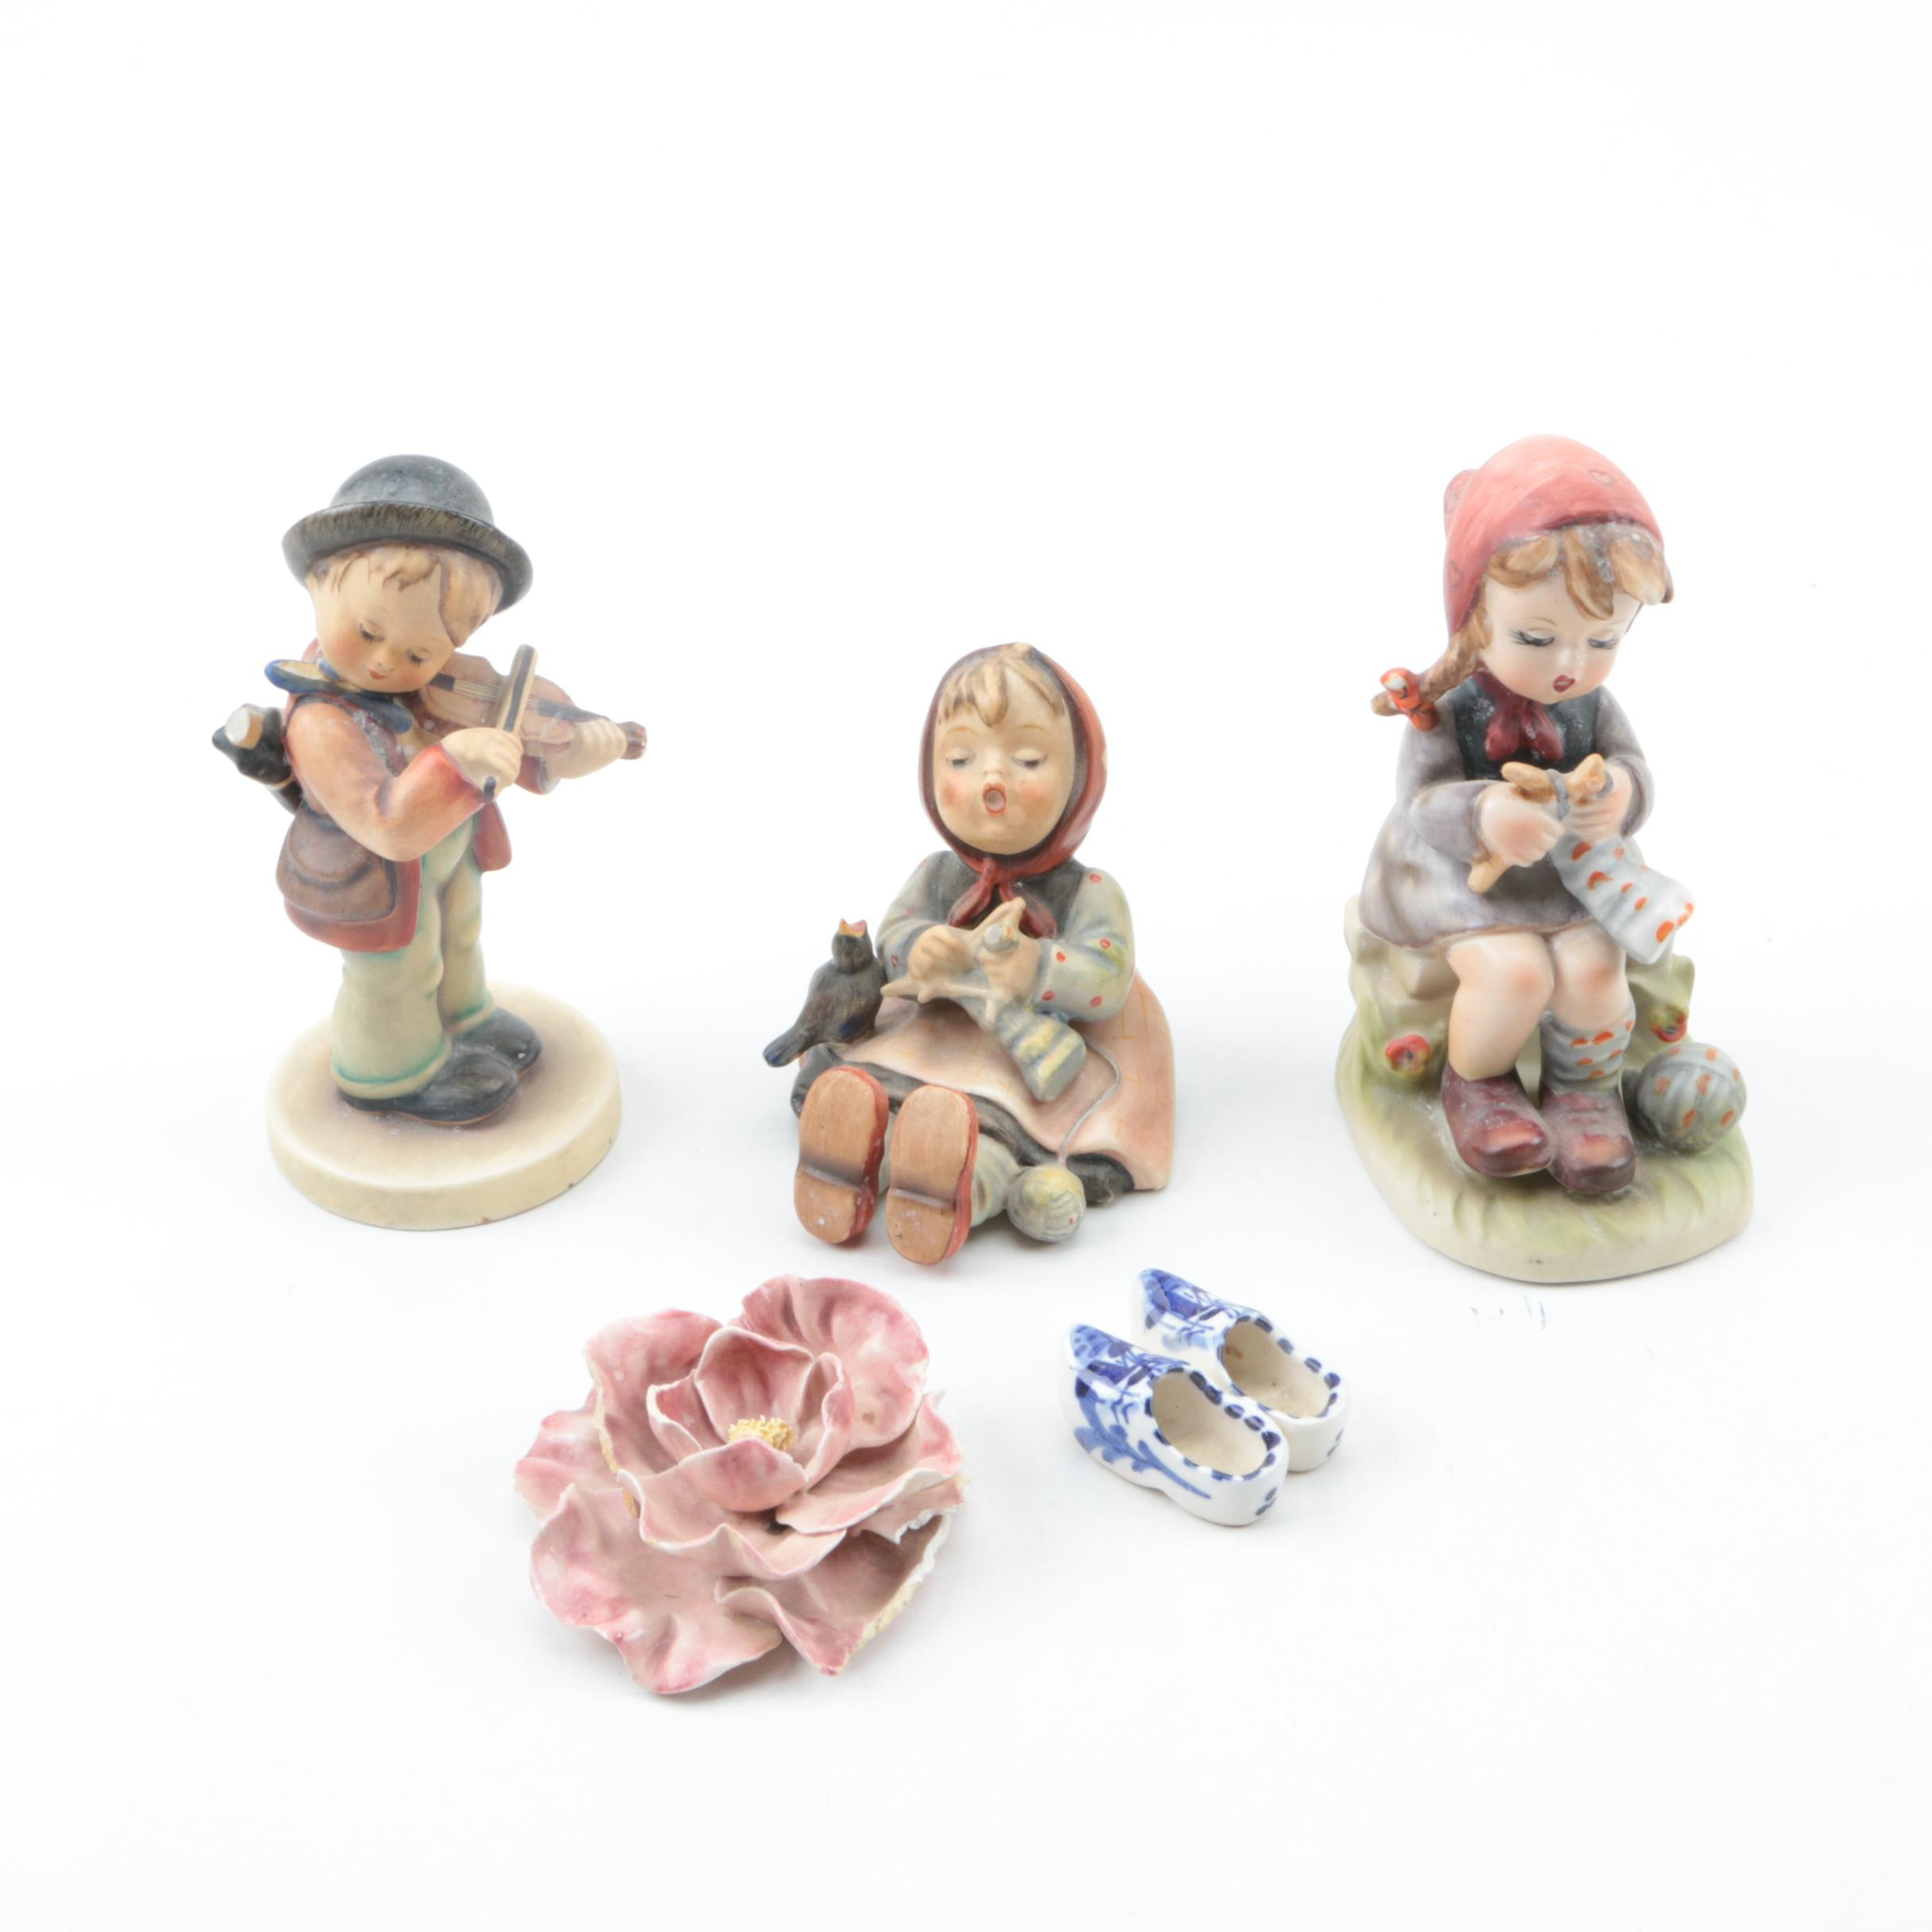 Porcelain and Ceramic Figurines Including Goebel